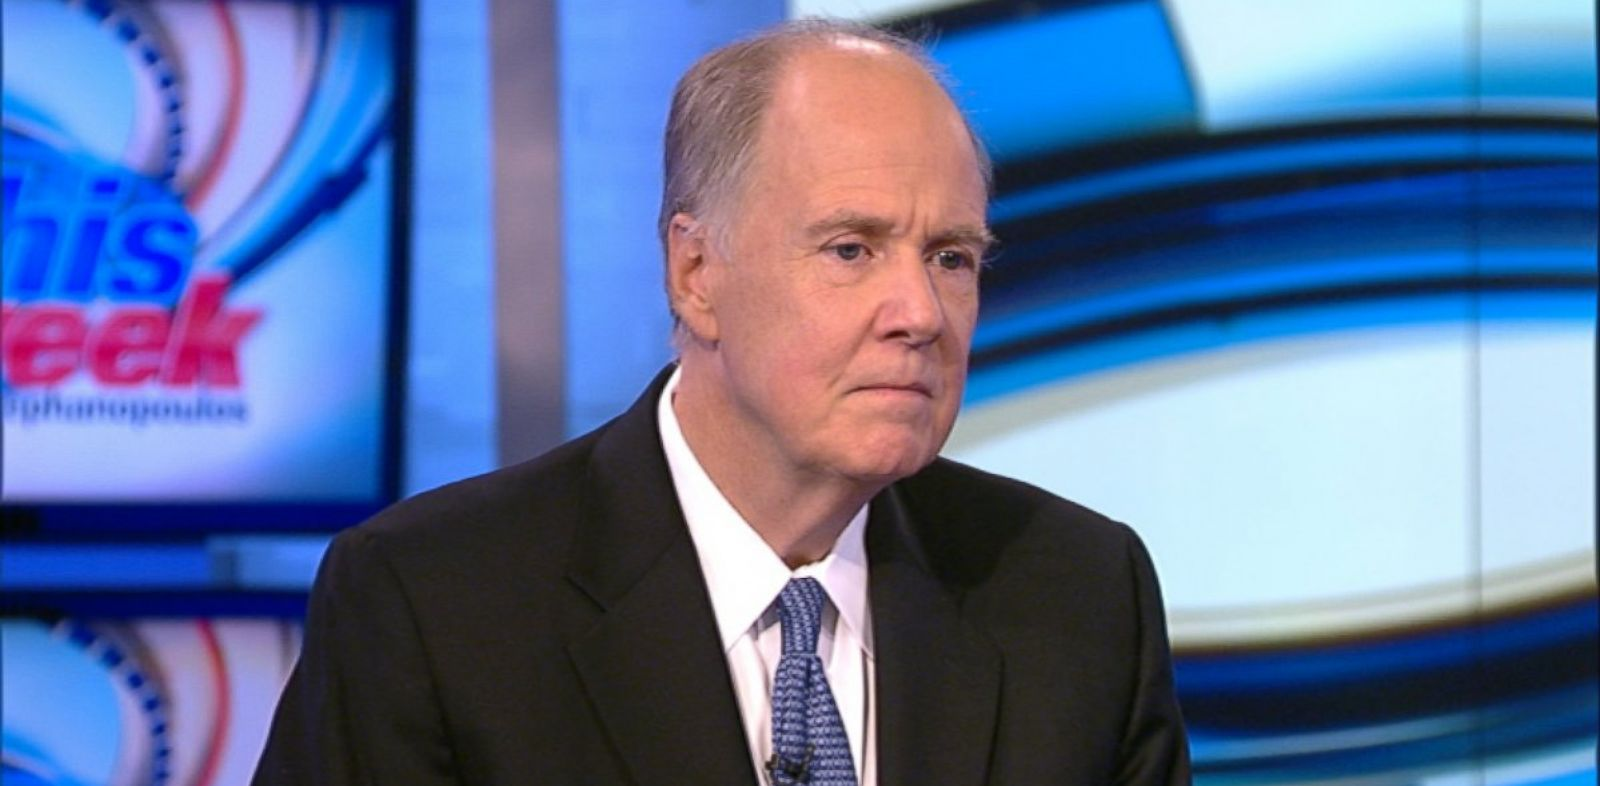 PHOTO: Former Obama National Security Adviser Tom Donilon on This Week